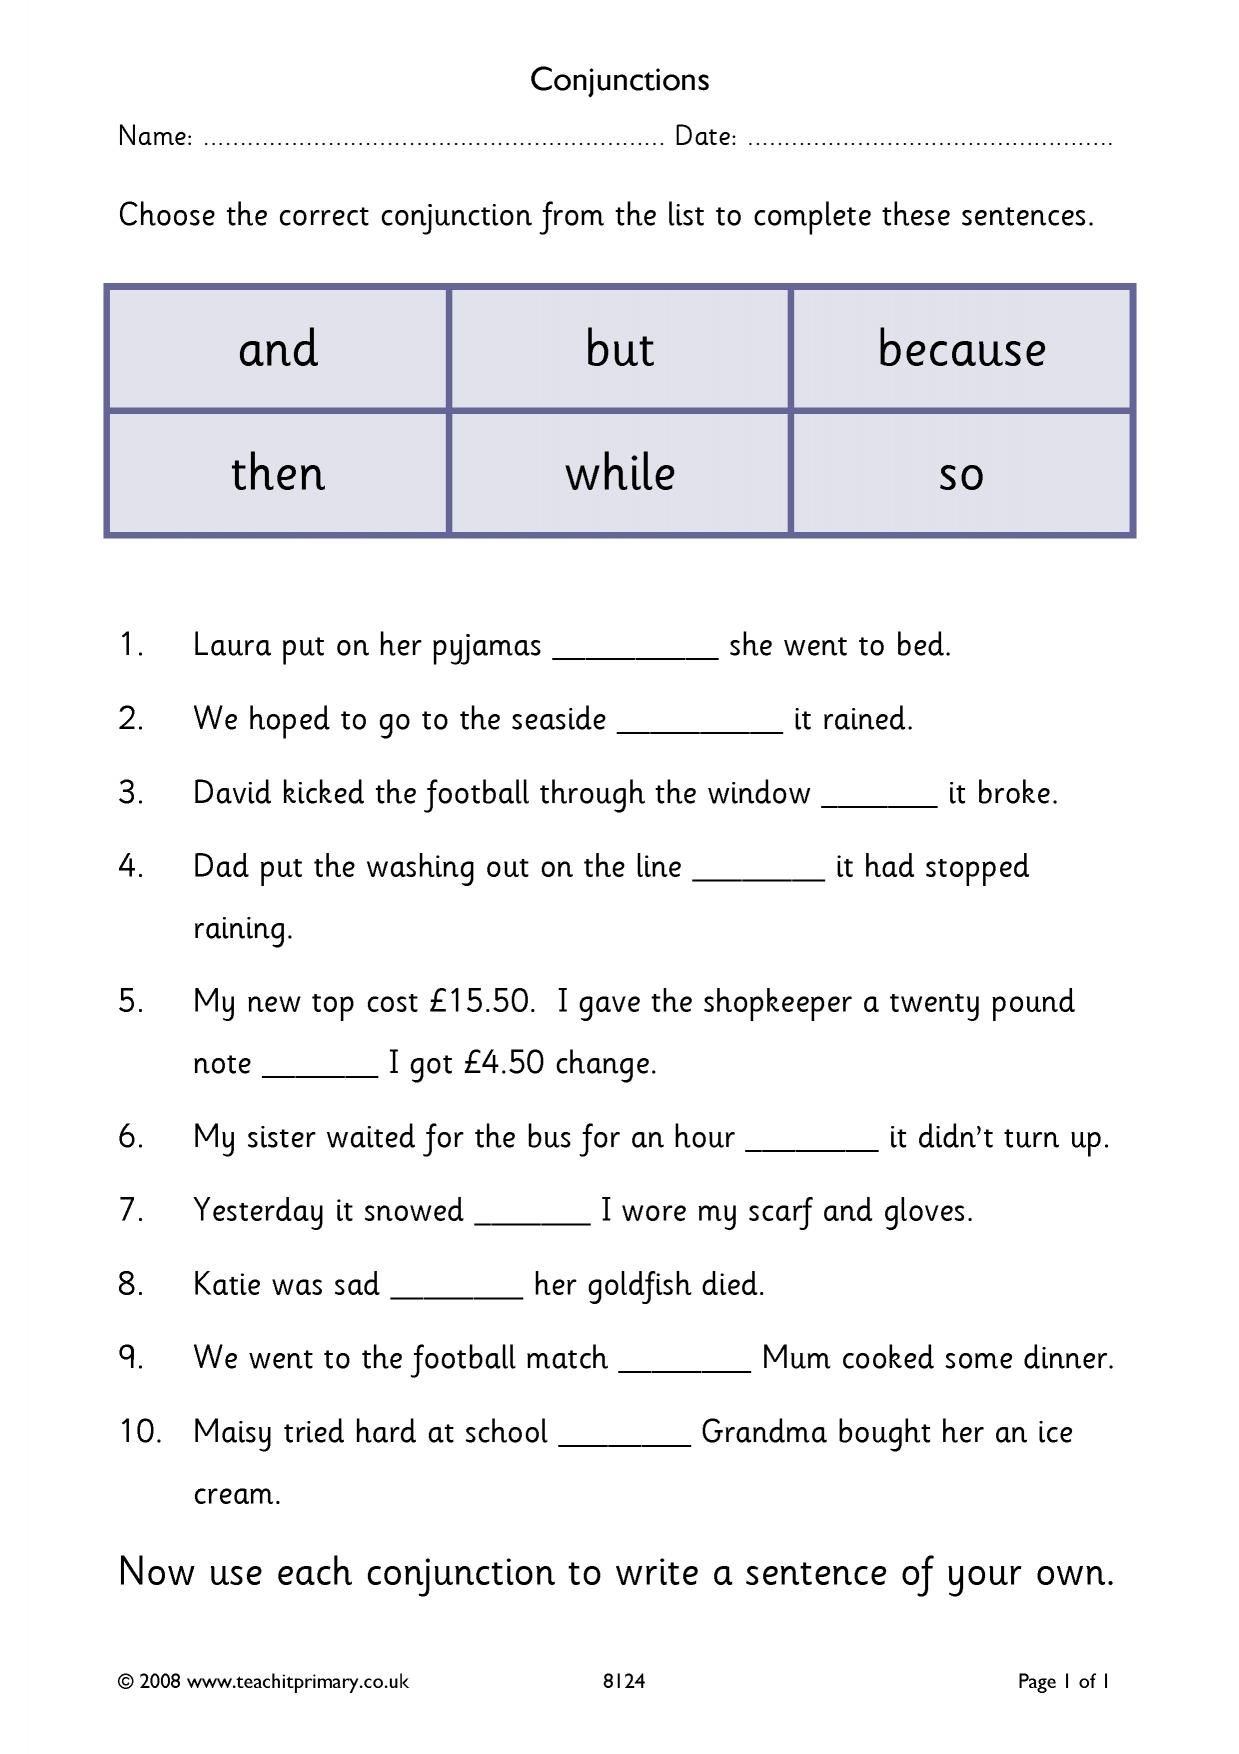 34 Simple Conjunctions Worksheets Design Ideas S